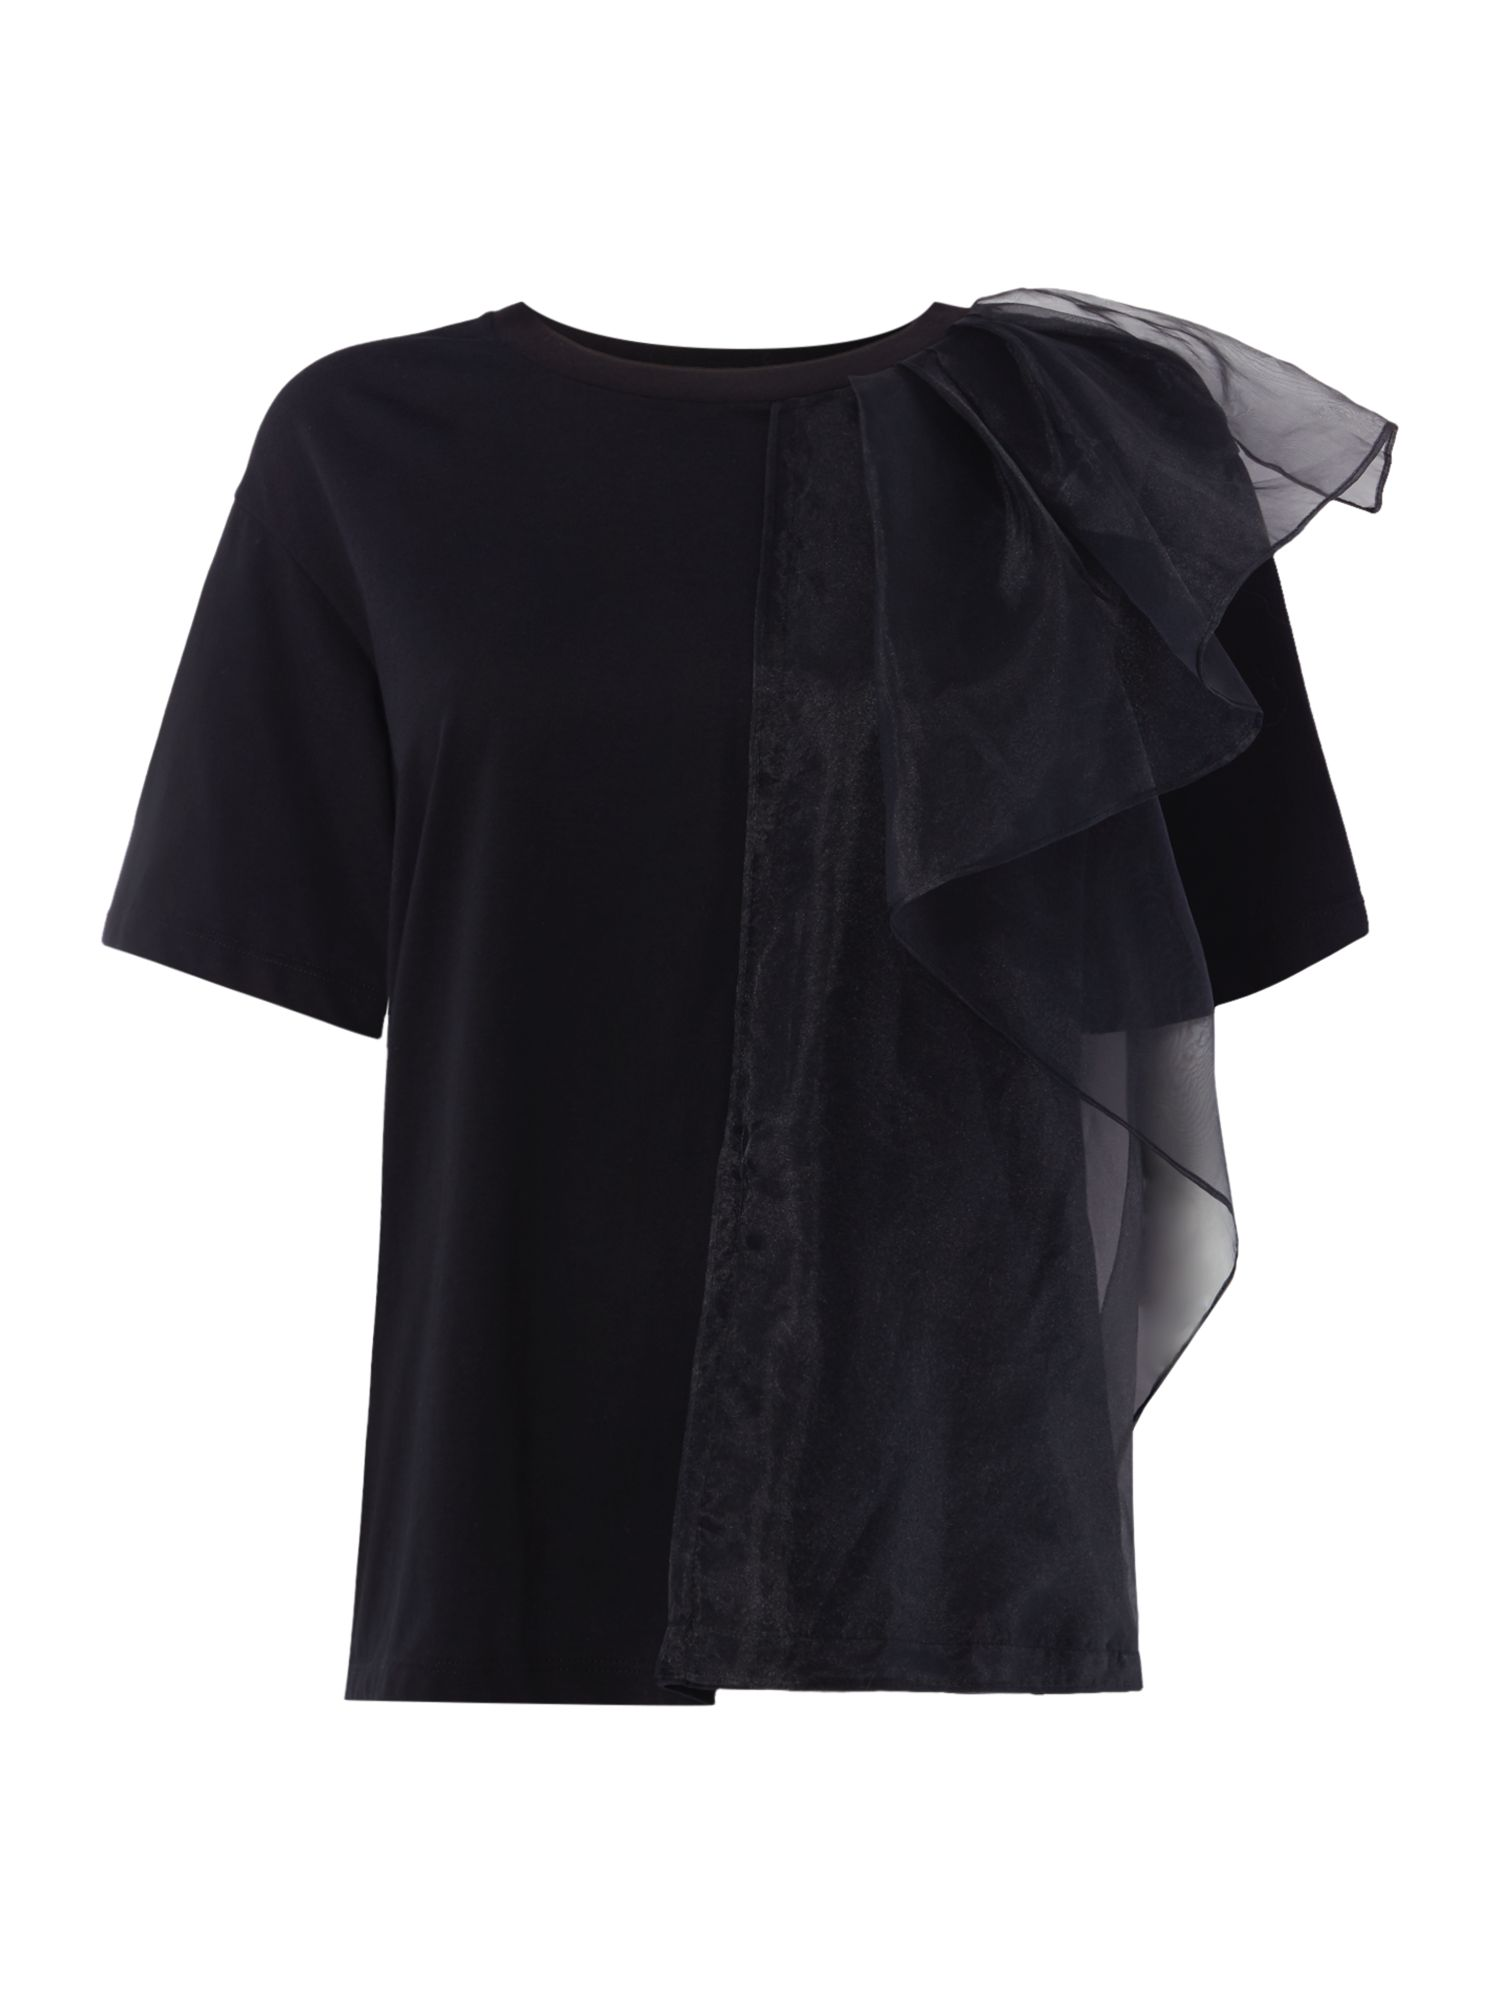 Sportmax Code Livingno t-shirt with ruffle detail, Black